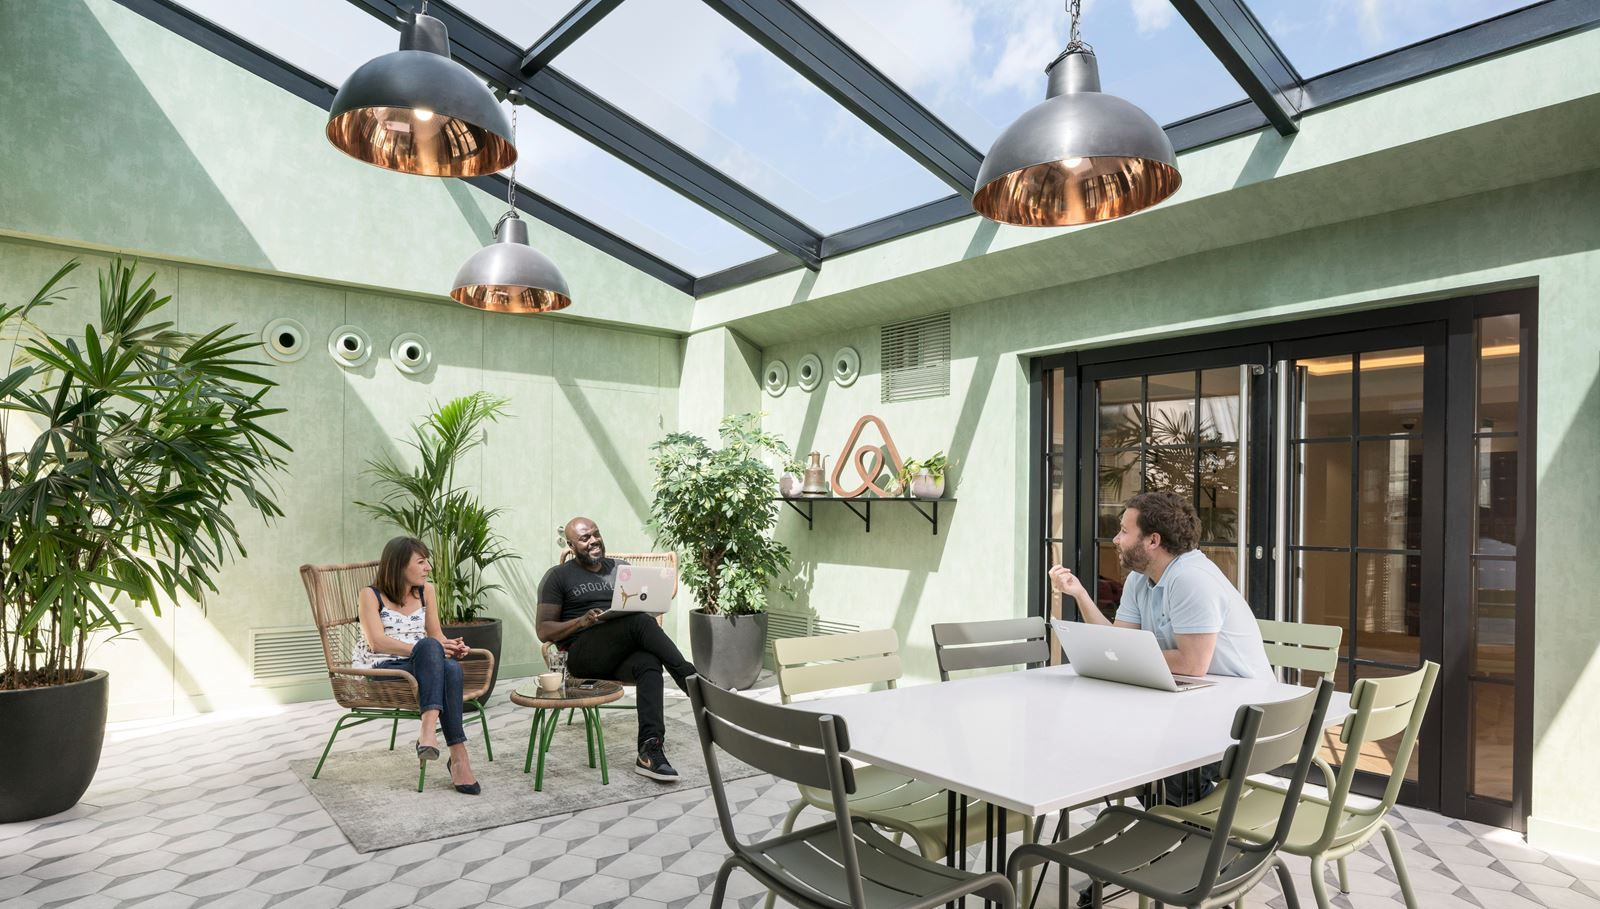 Take a Peek Inside Airbnb's New Loft-Inspired Office Space in Paris - Dwell